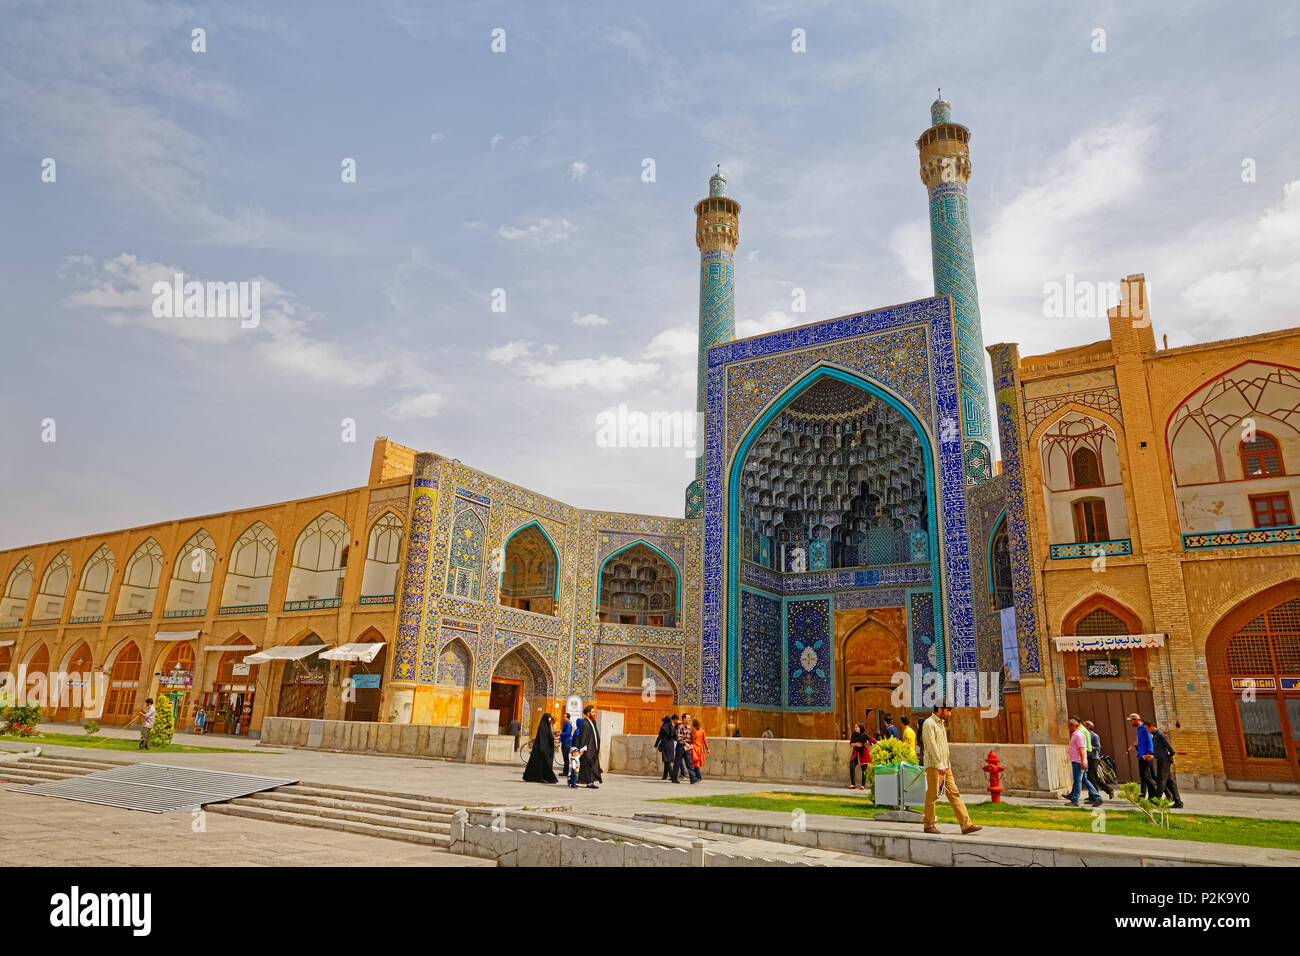 Isfahan Shah Mosque - Stock Image